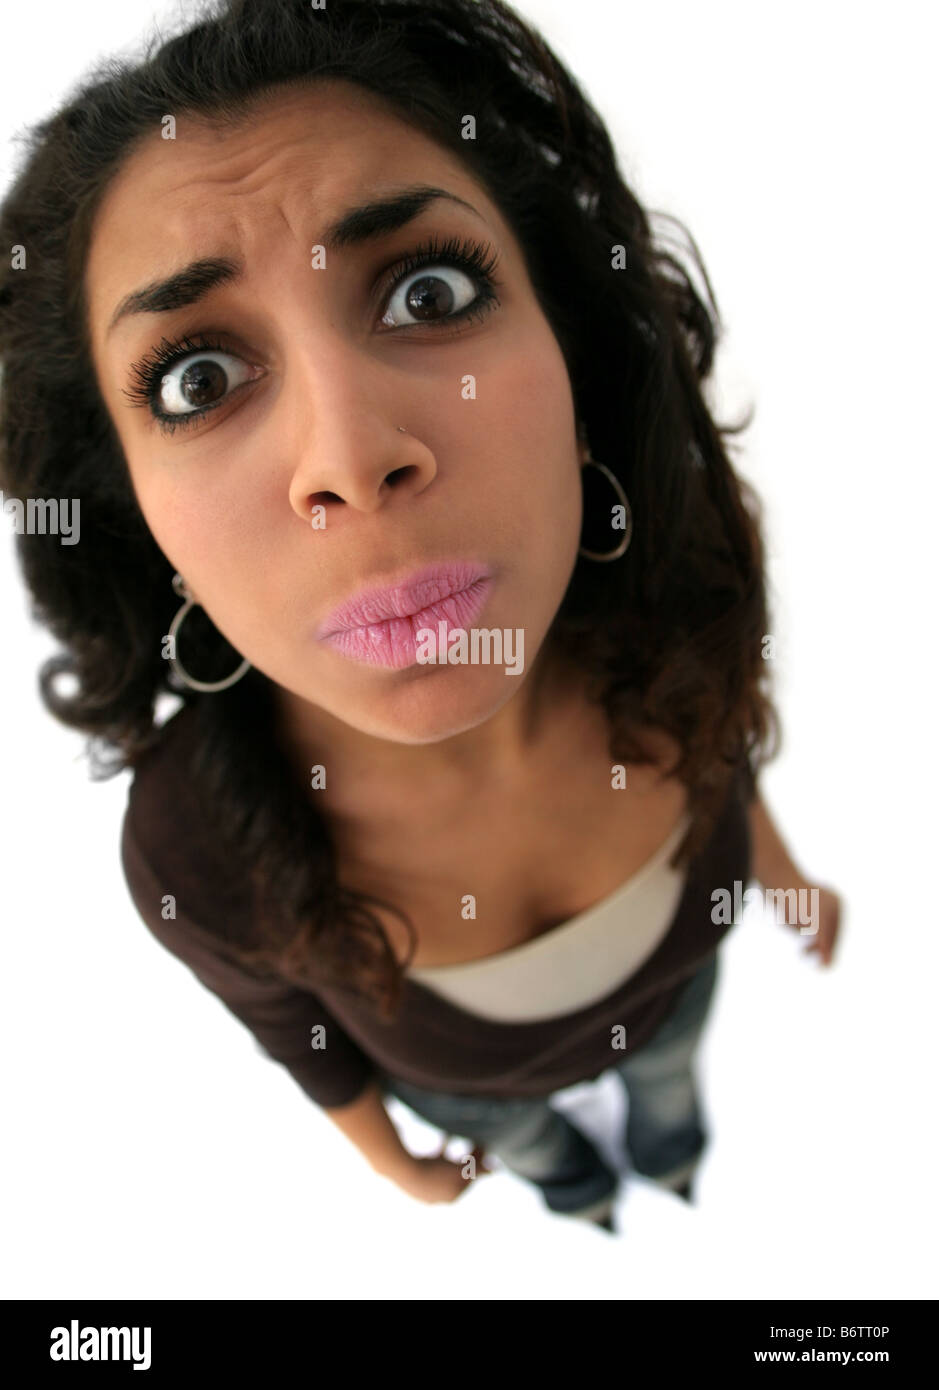 A teenage girl with a funny expression The picture was taken with fisheye lens Stock Photo